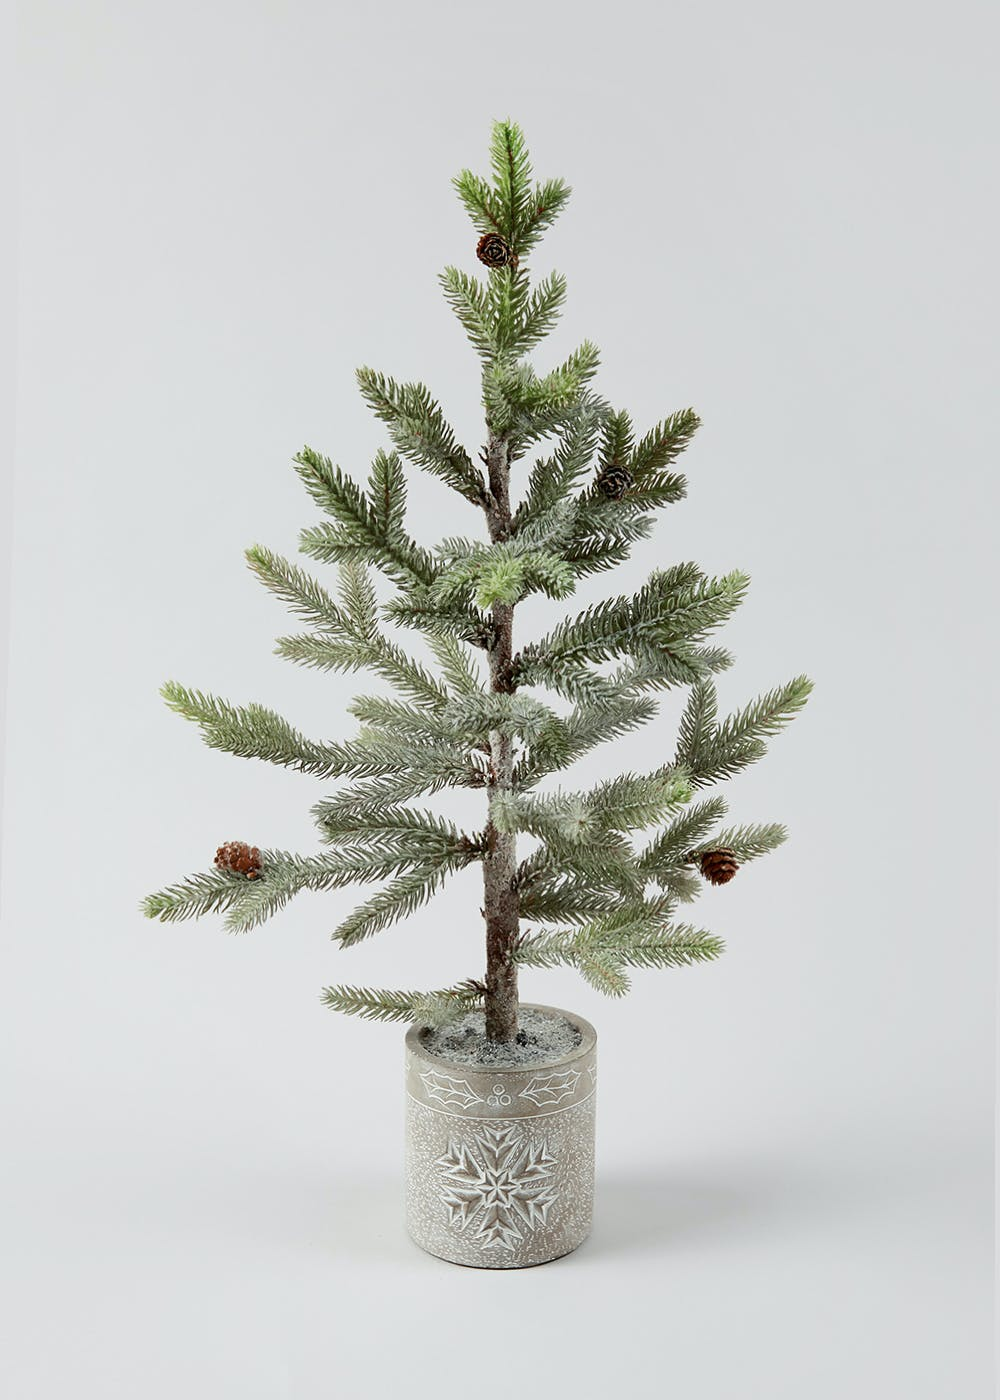 Potted Christmas Tree.Potted Christmas Fir Tree 62cm X 12cm X 12cm